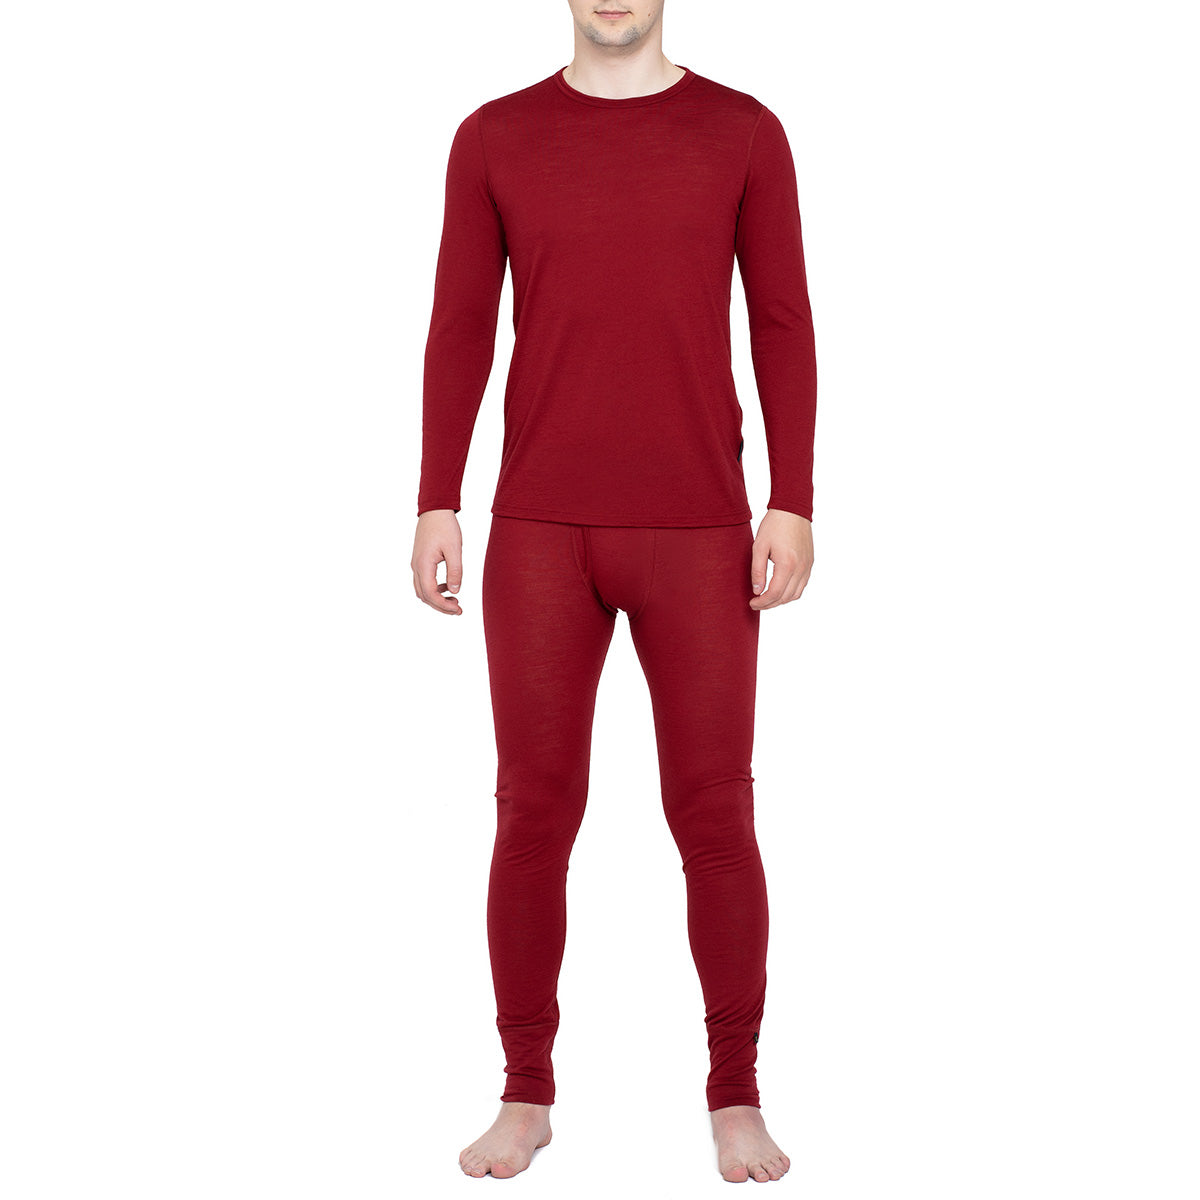 Men's Long Sleeve Set 160gsm Merino Wool Royal Cherry